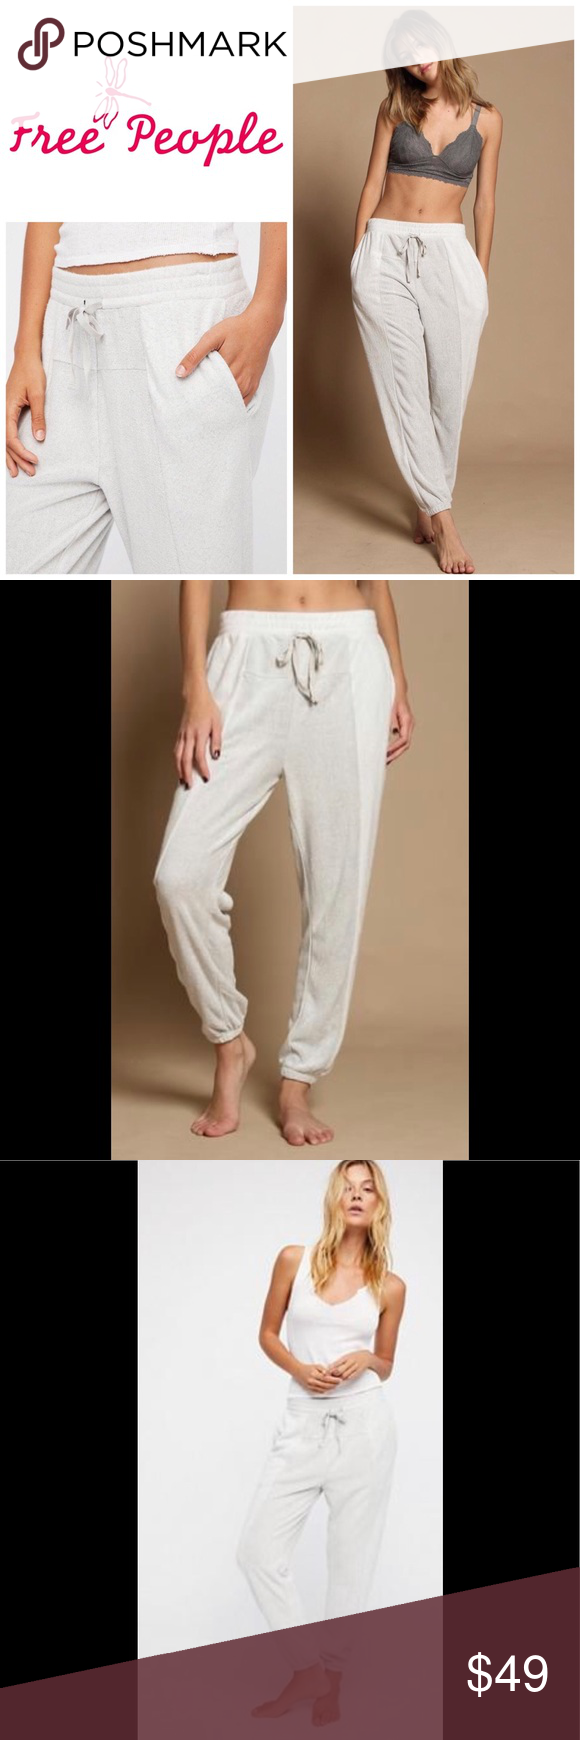 Free People all day all night jogger. NWT So soft and cozy joggers perfect for relaxed day to night...